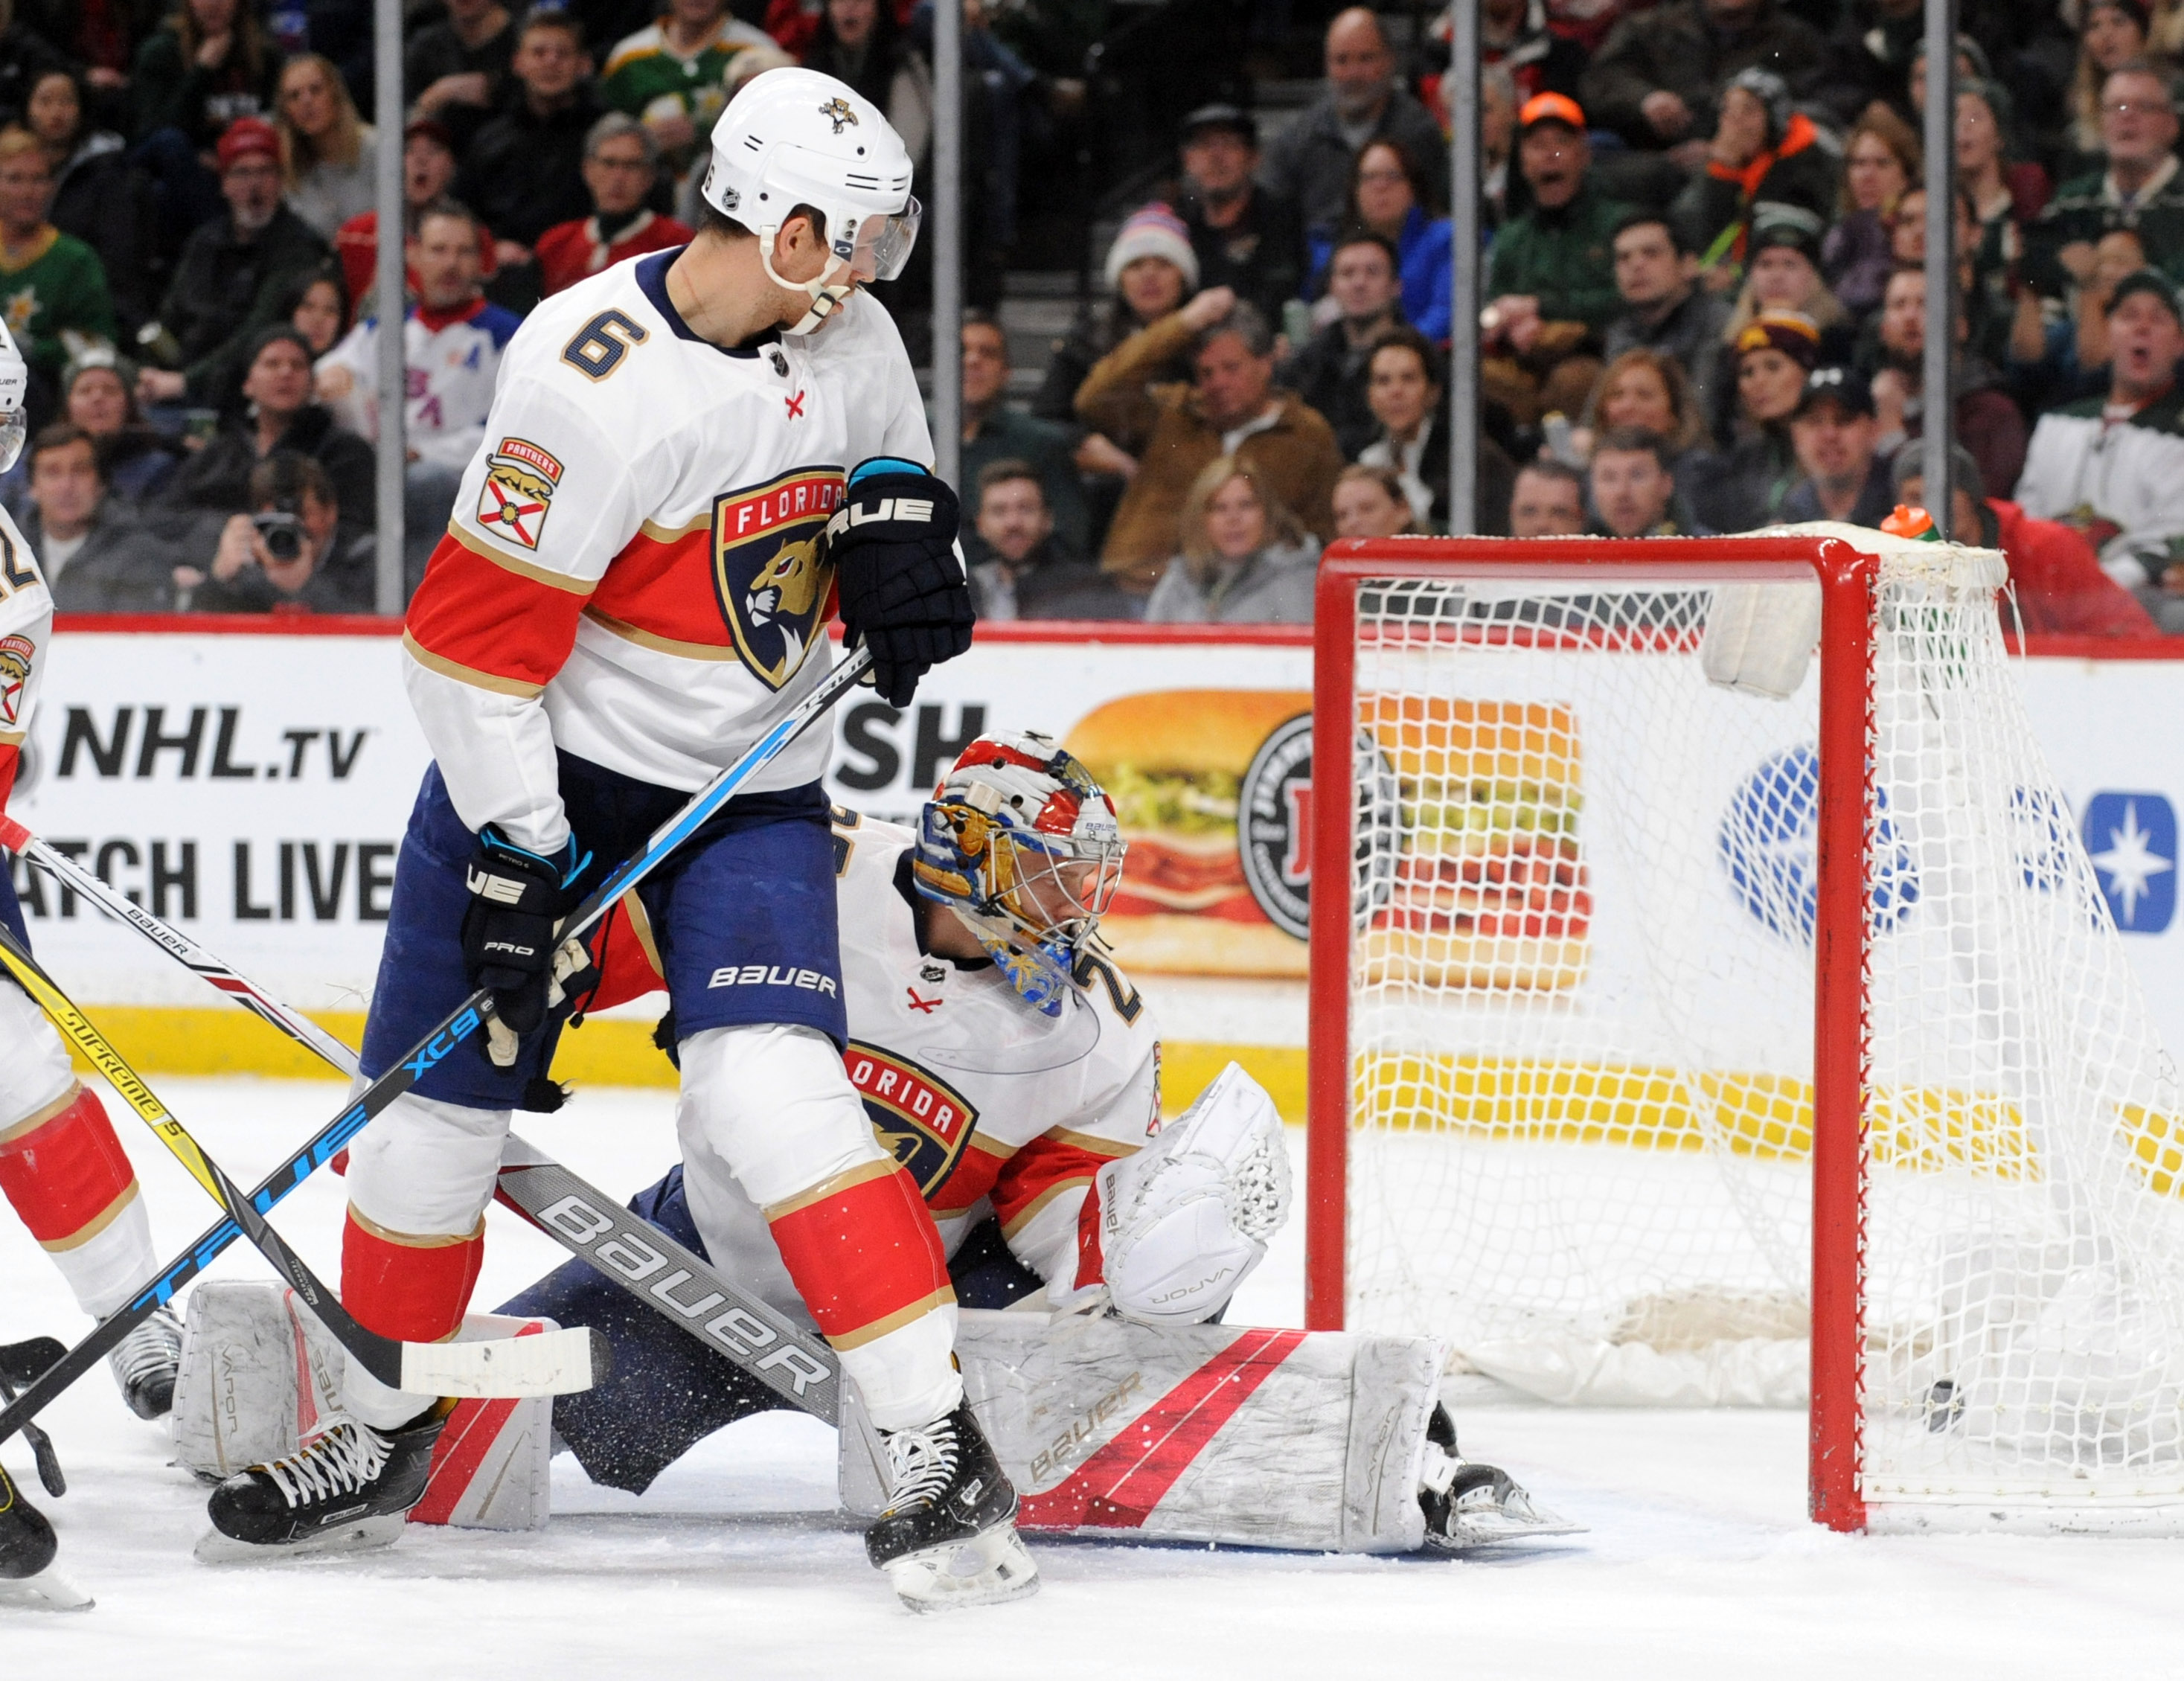 Cullen, Staal Carry Wild to 5-1 Victory Over Florida